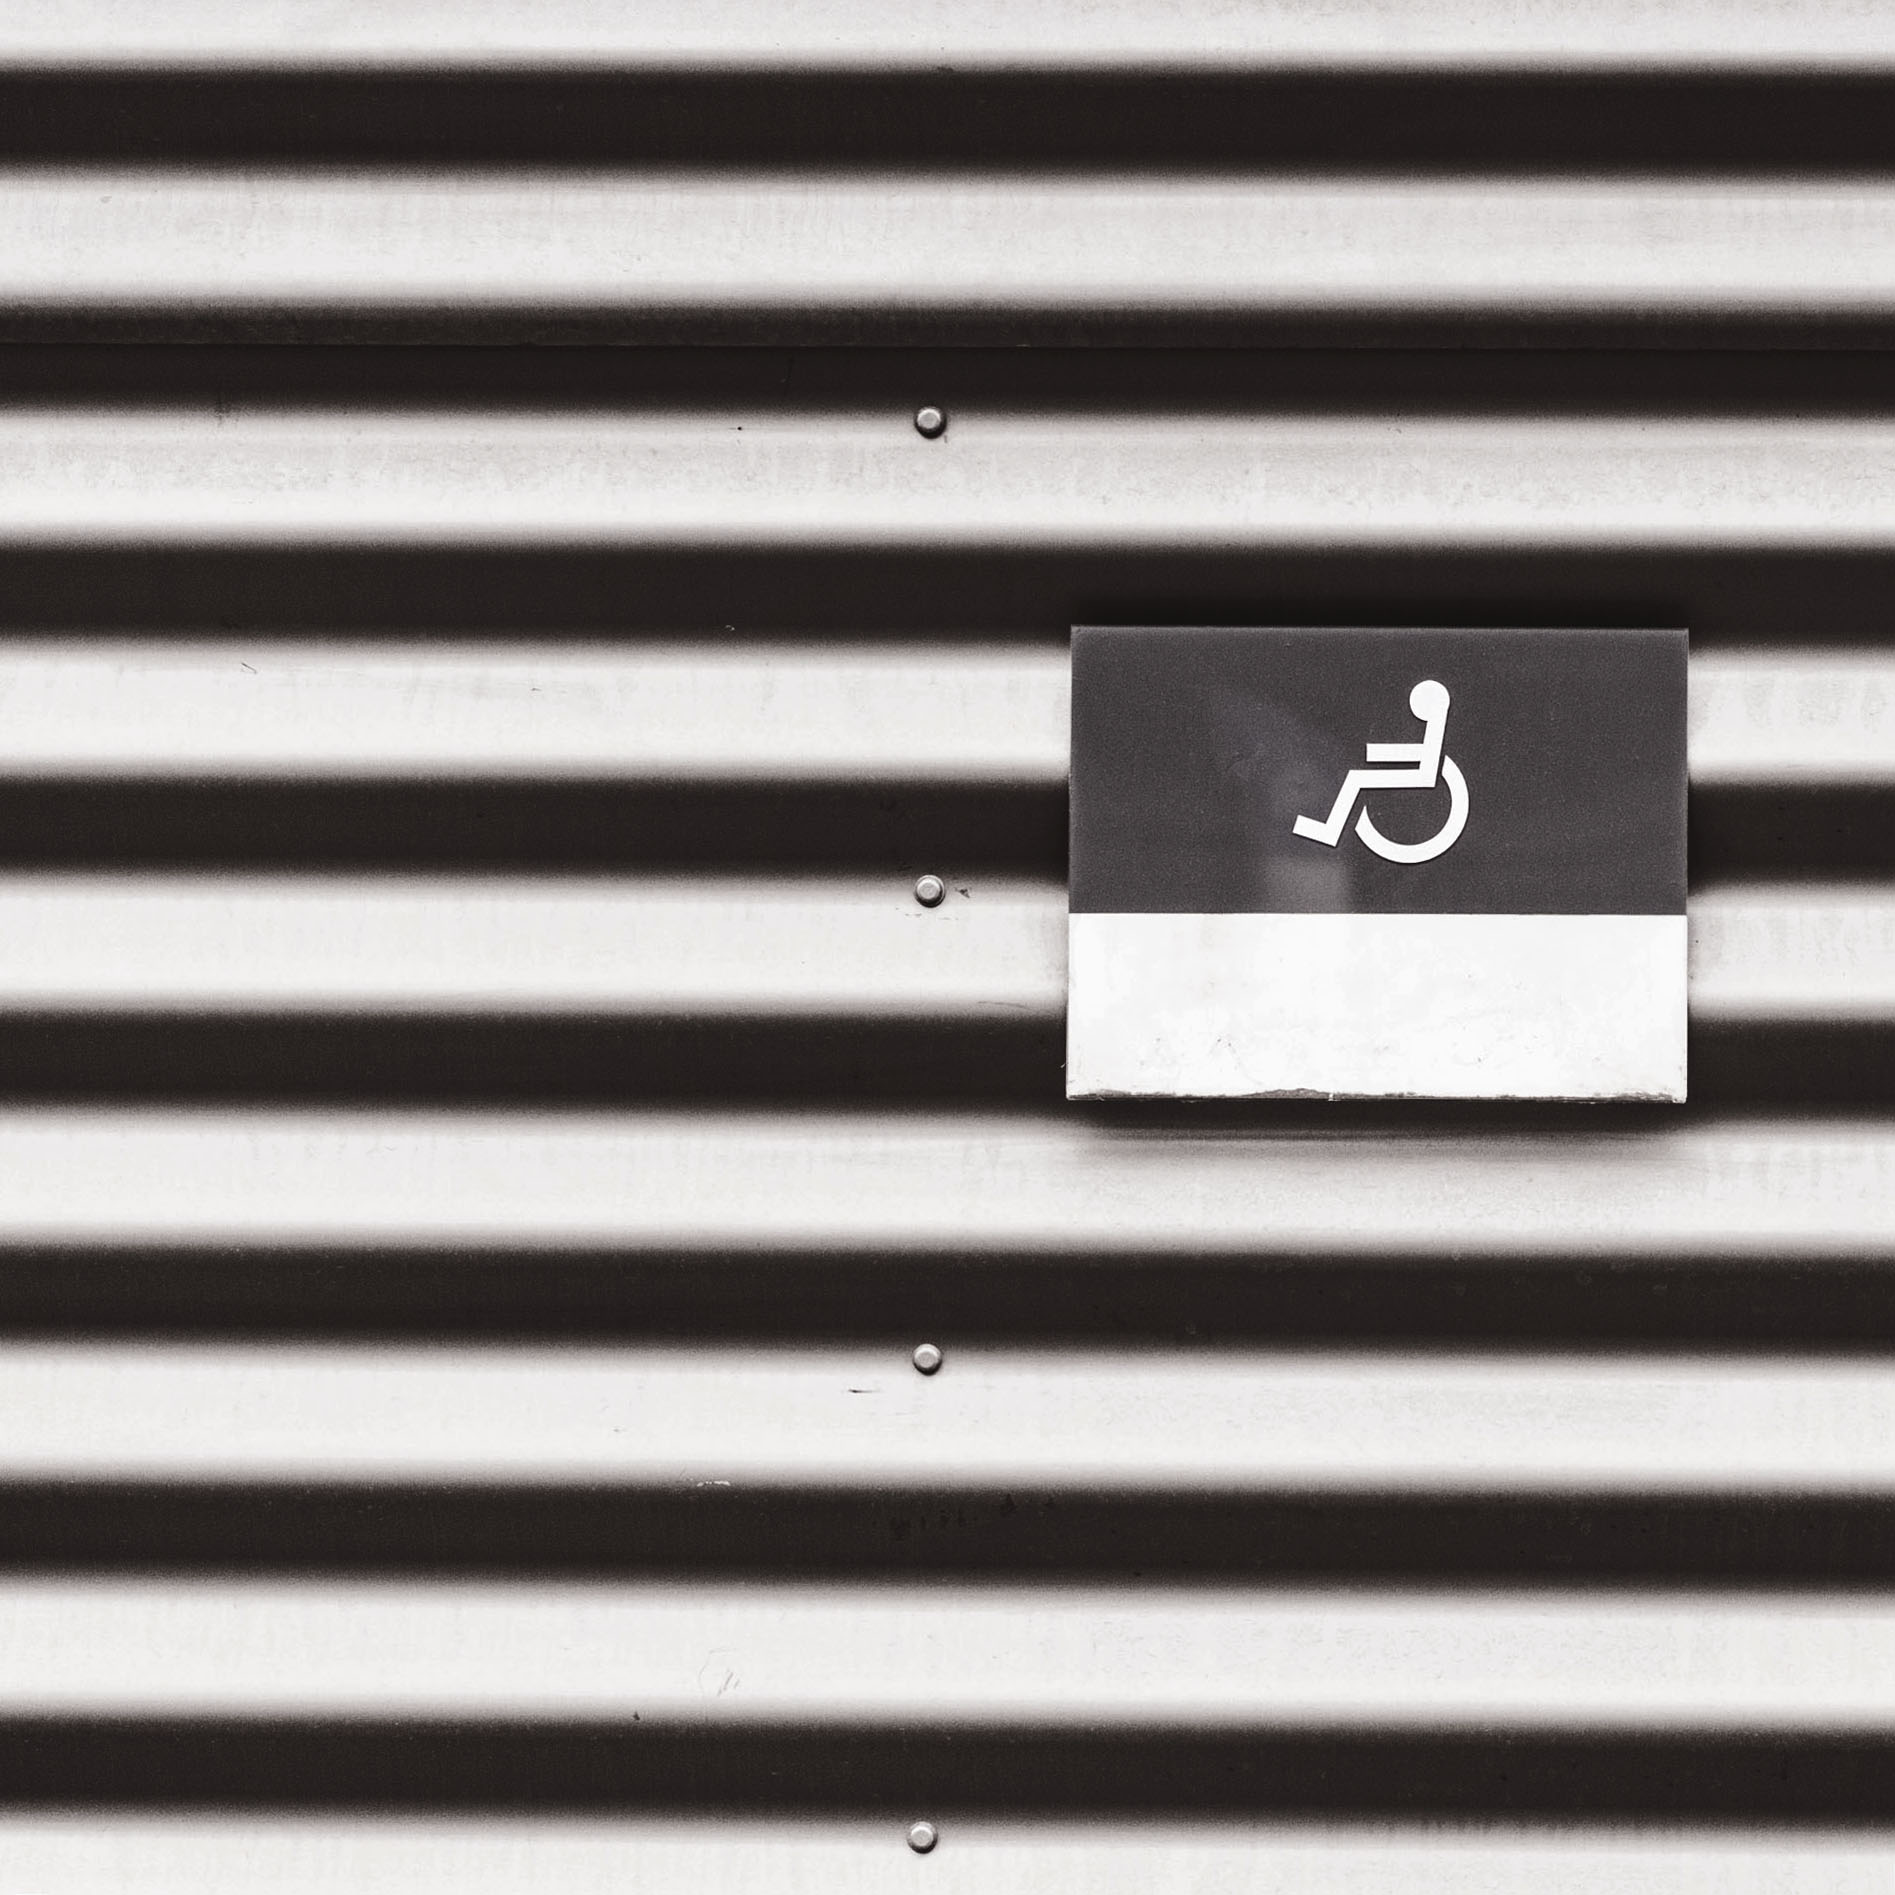 metal-wall-with-wheelchair-disabled-sign-picjumbo-com.jpg